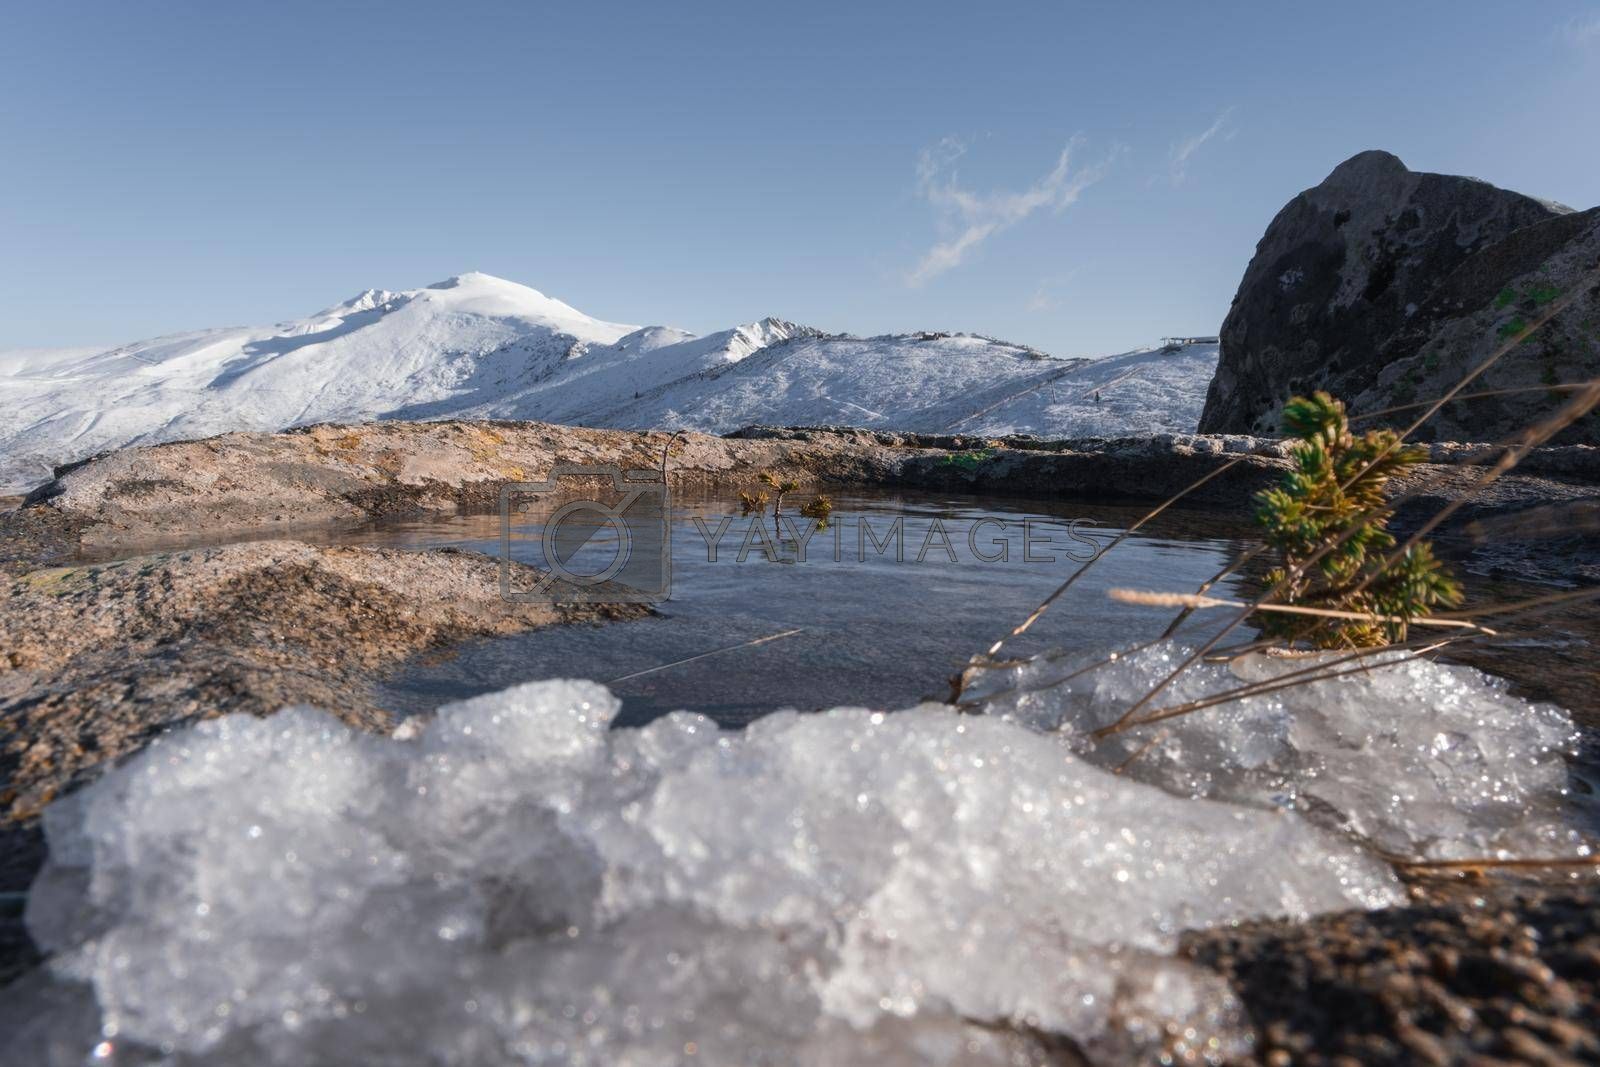 It depicts the puddle in the snowy mountain in Winter